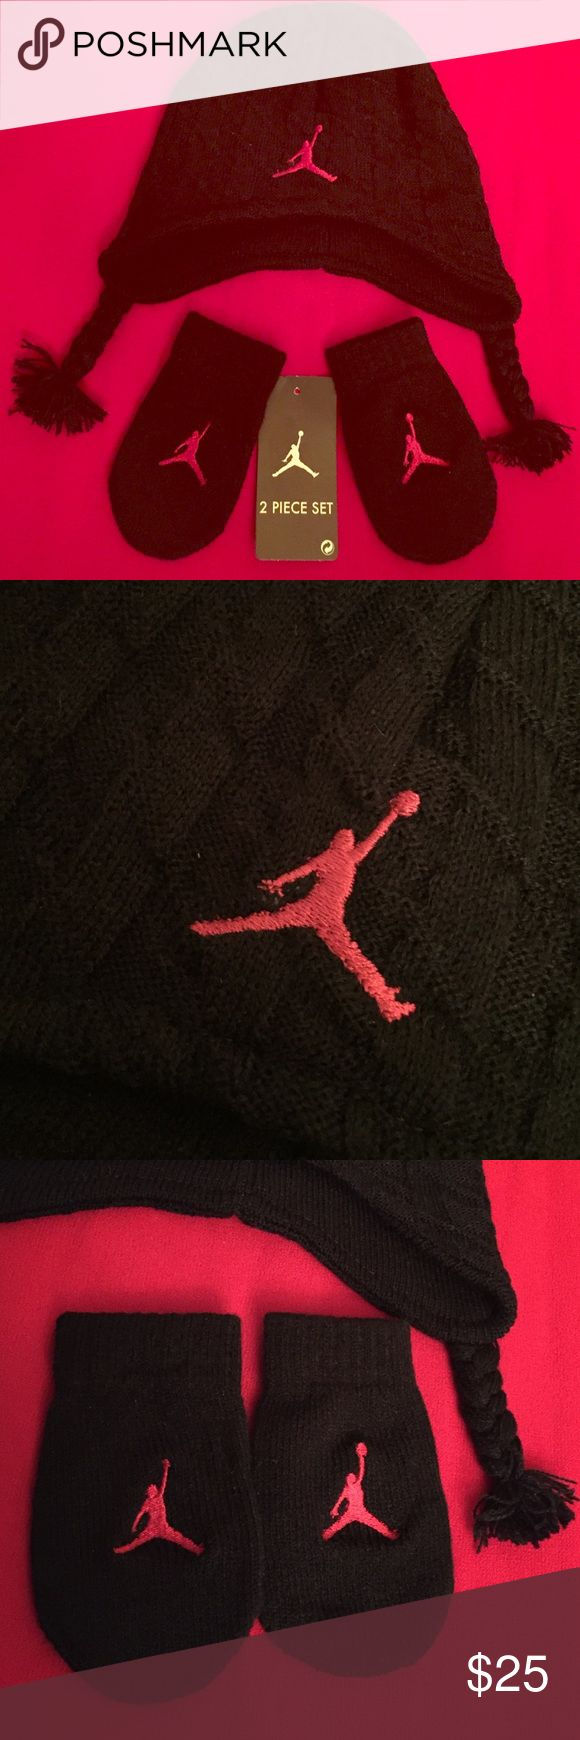 Best 25 Jumpman Logo Ideas On Pinterest Shoe Websites